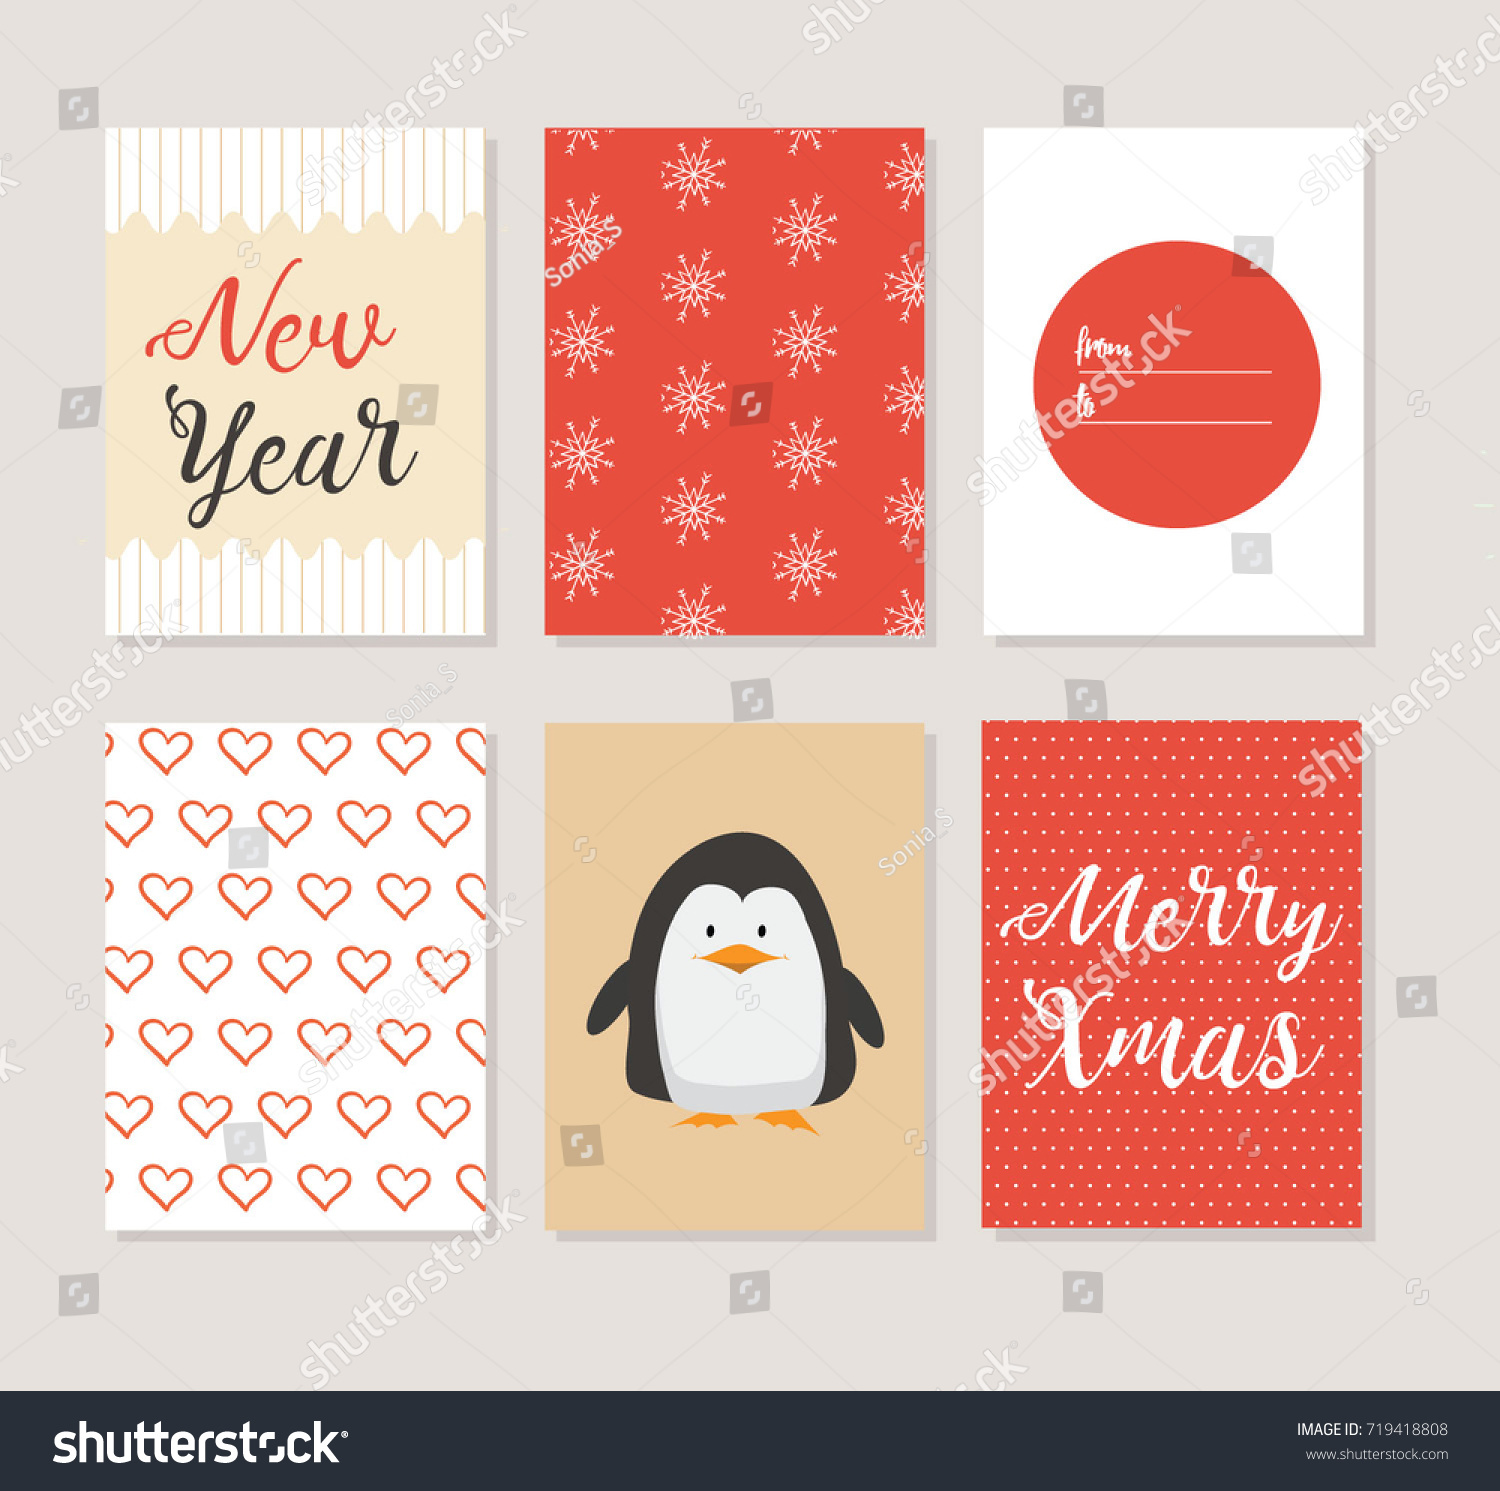 Merry christmas greeting cards set cute stock vector 719418808 merry christmas greeting cards set with cute penguin and pattern designs kristyandbryce Gallery